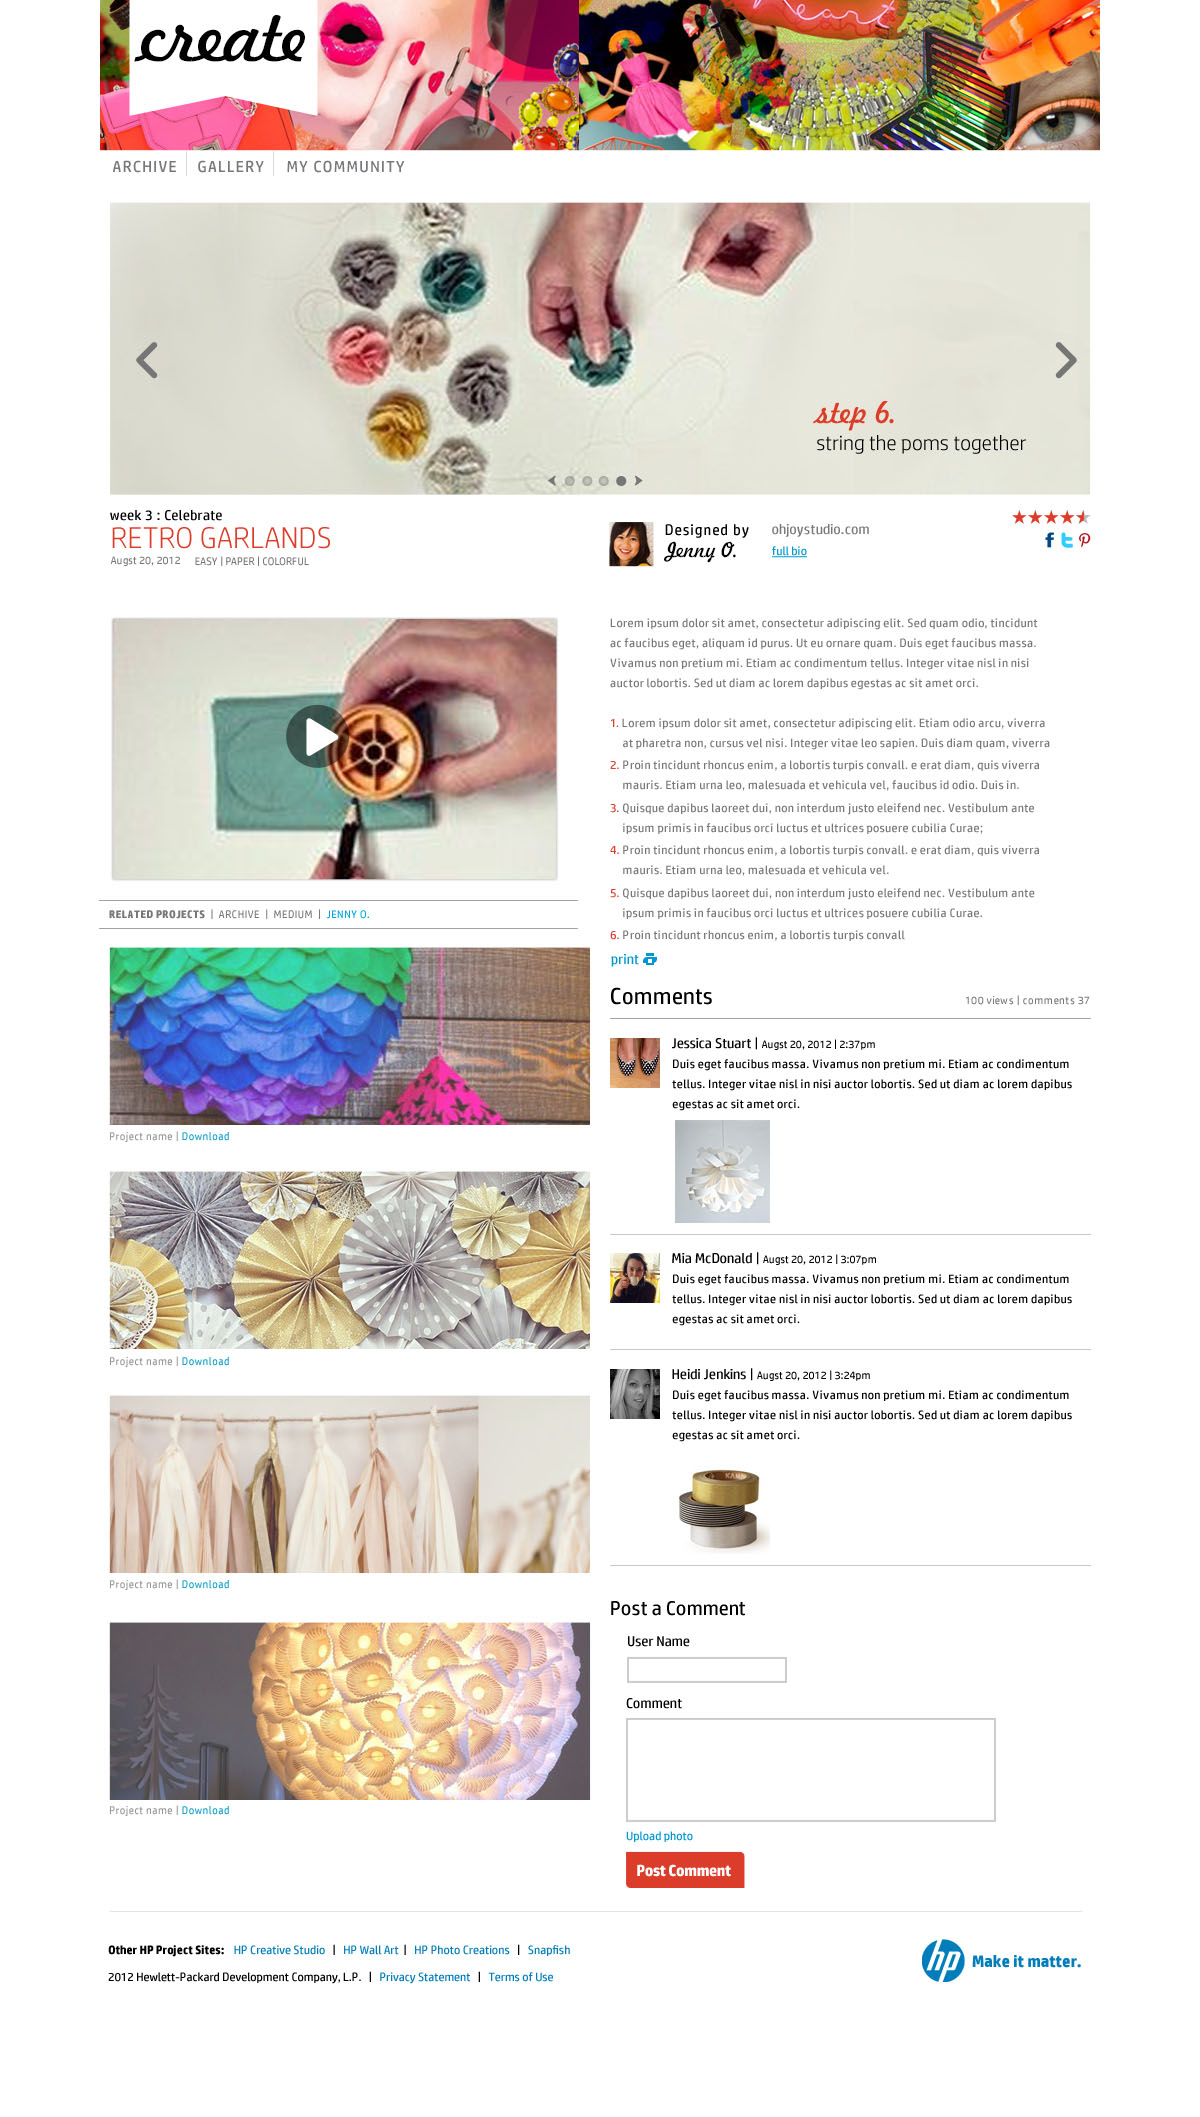 HP_Create_0001_2 Project page.jpg